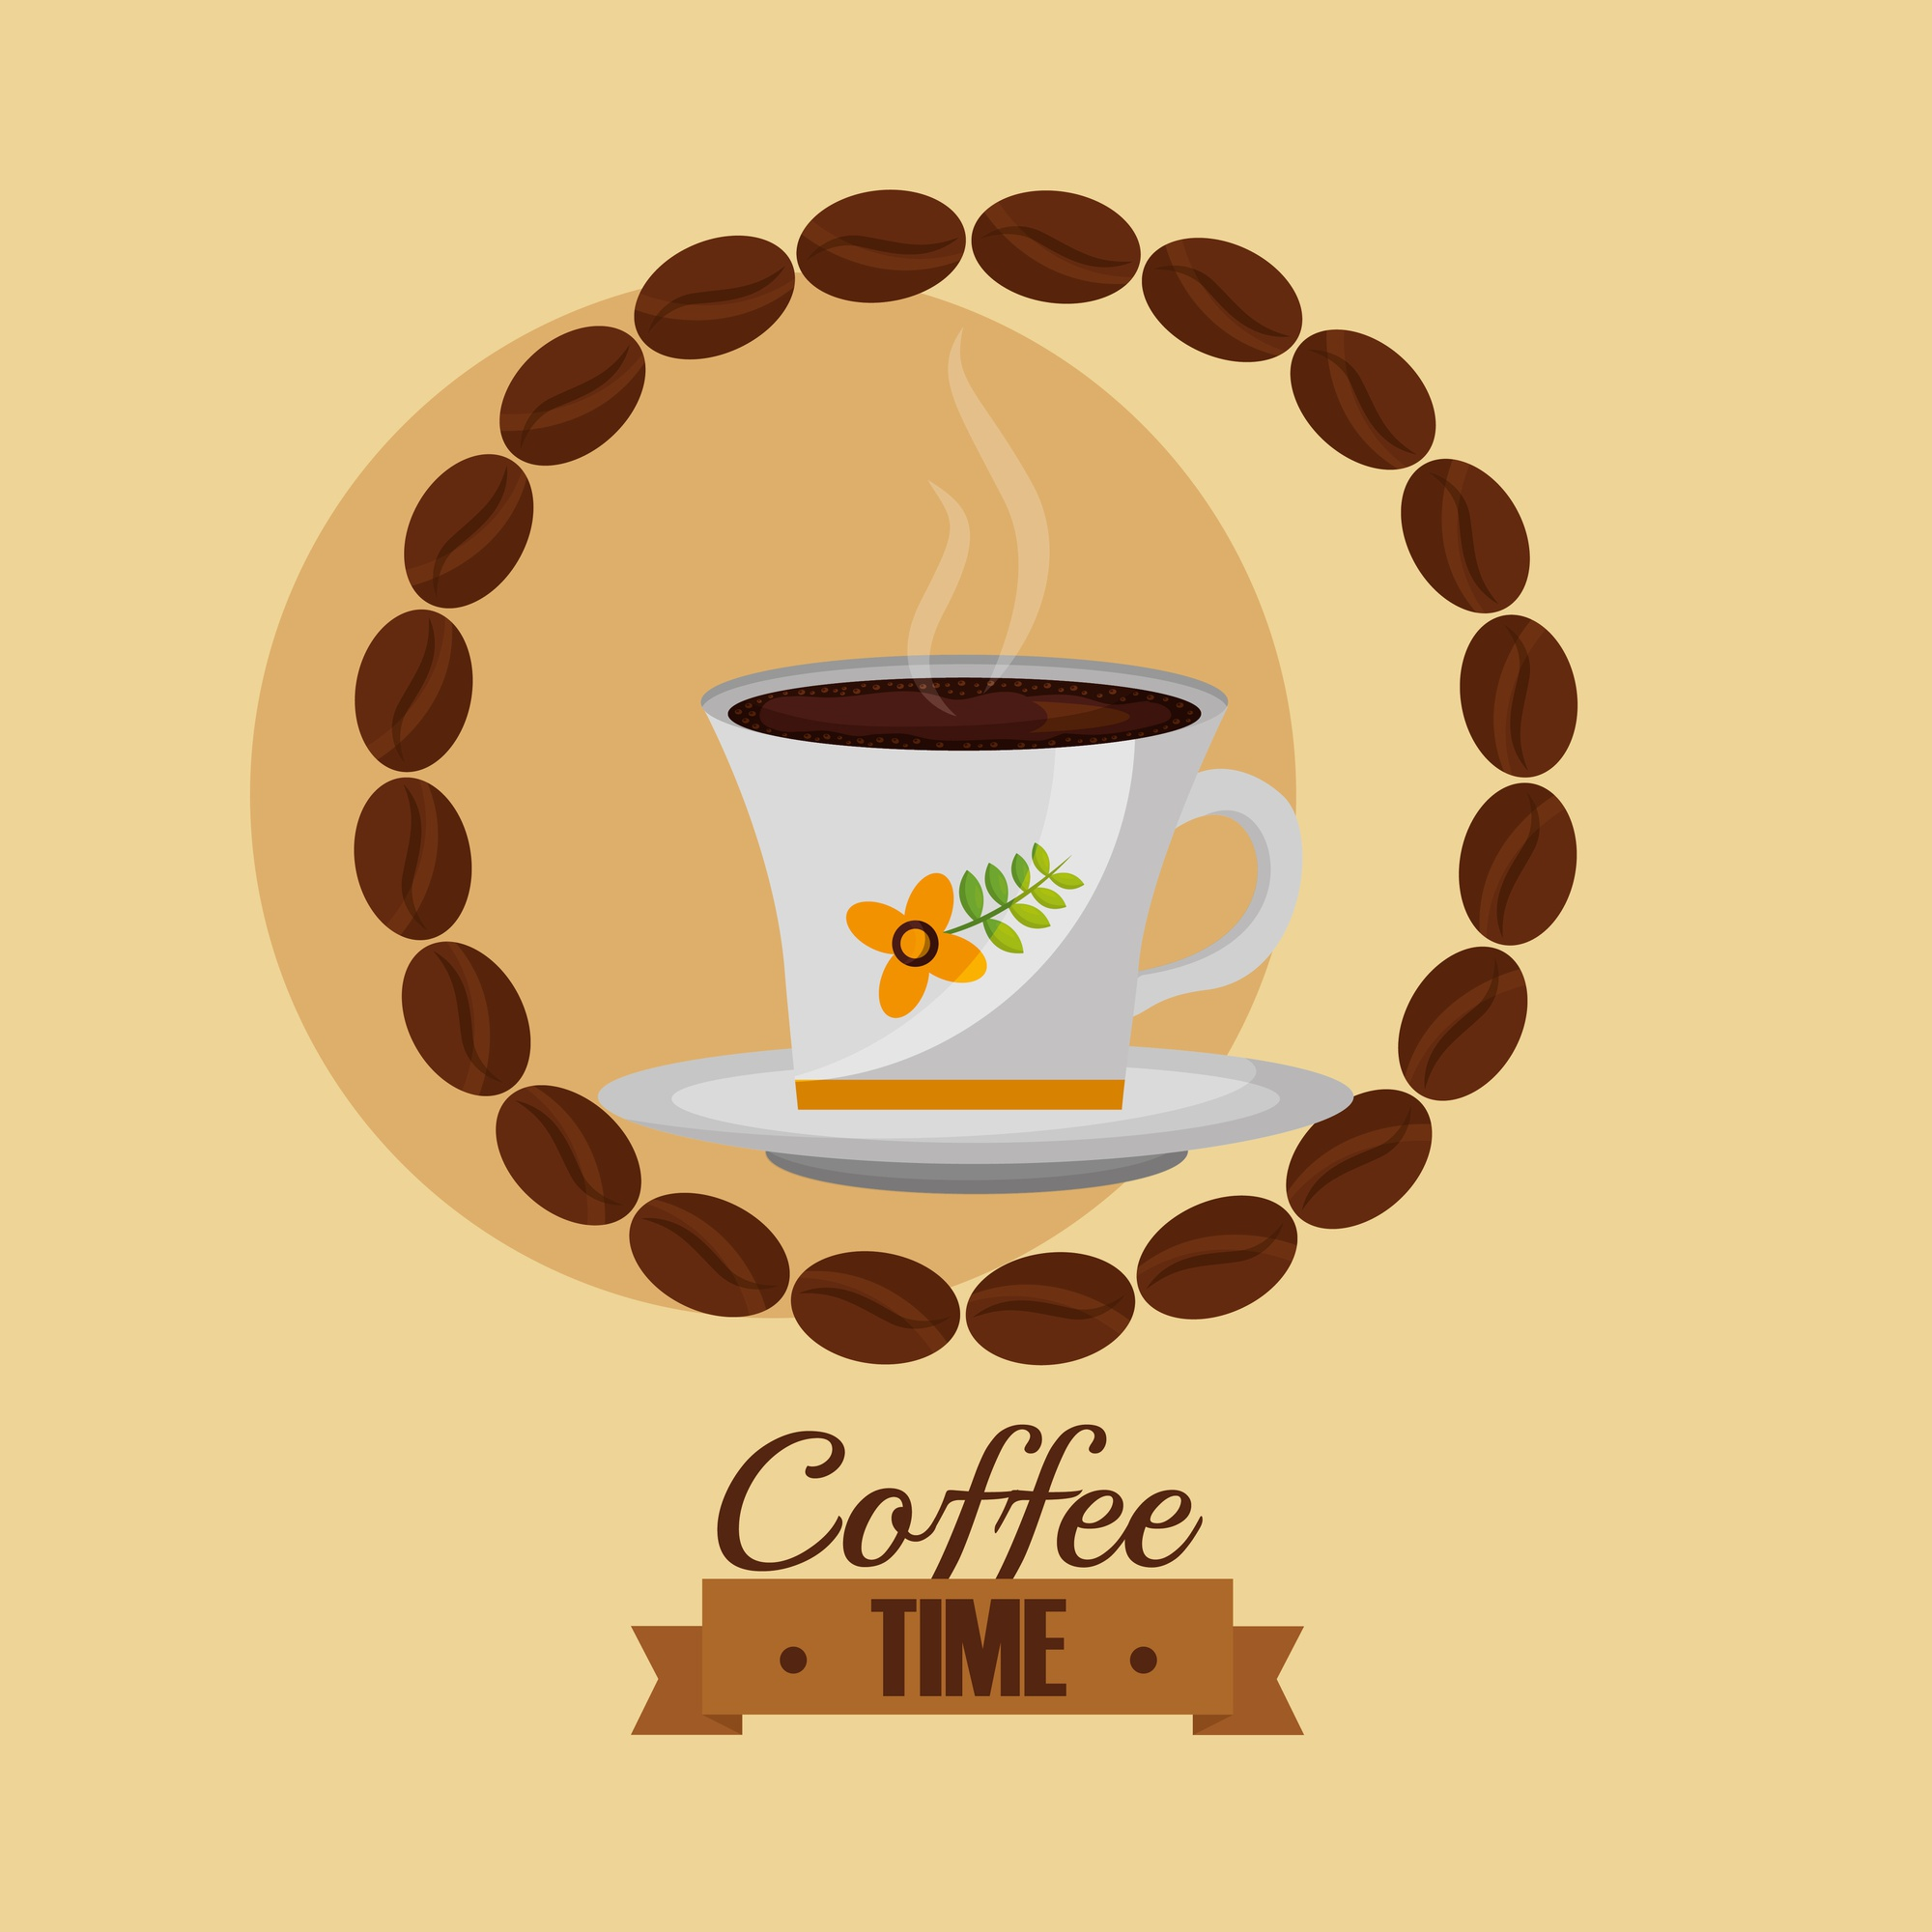 Coffee time cup and seeds shaped circle vector illustration